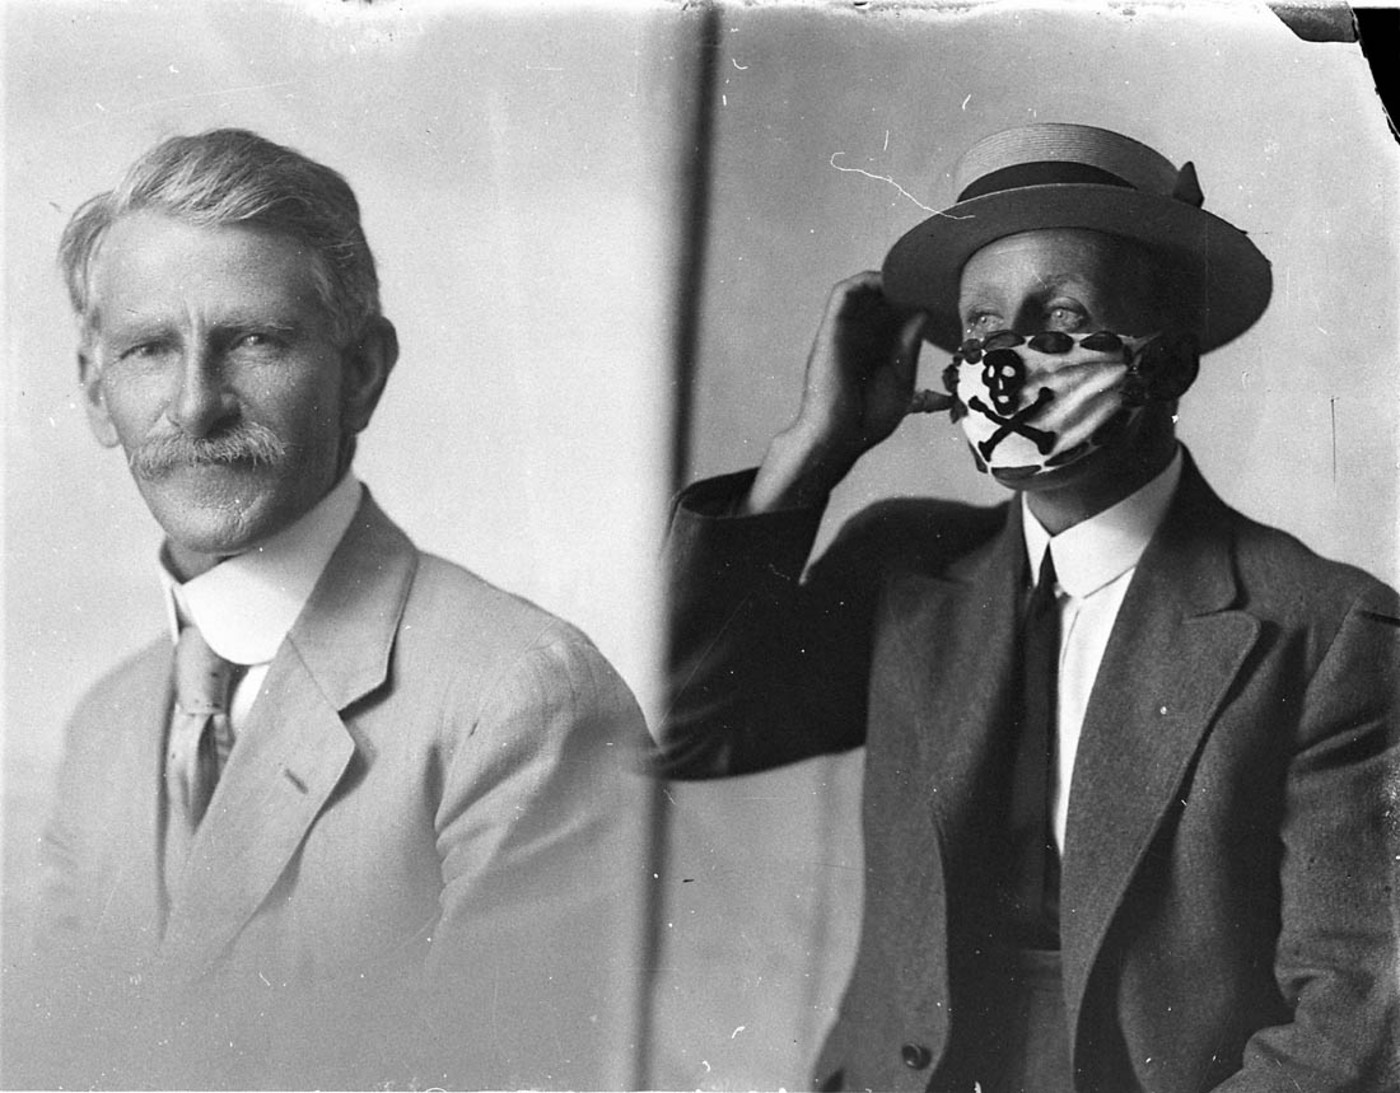 Two different men, one wearing a mask